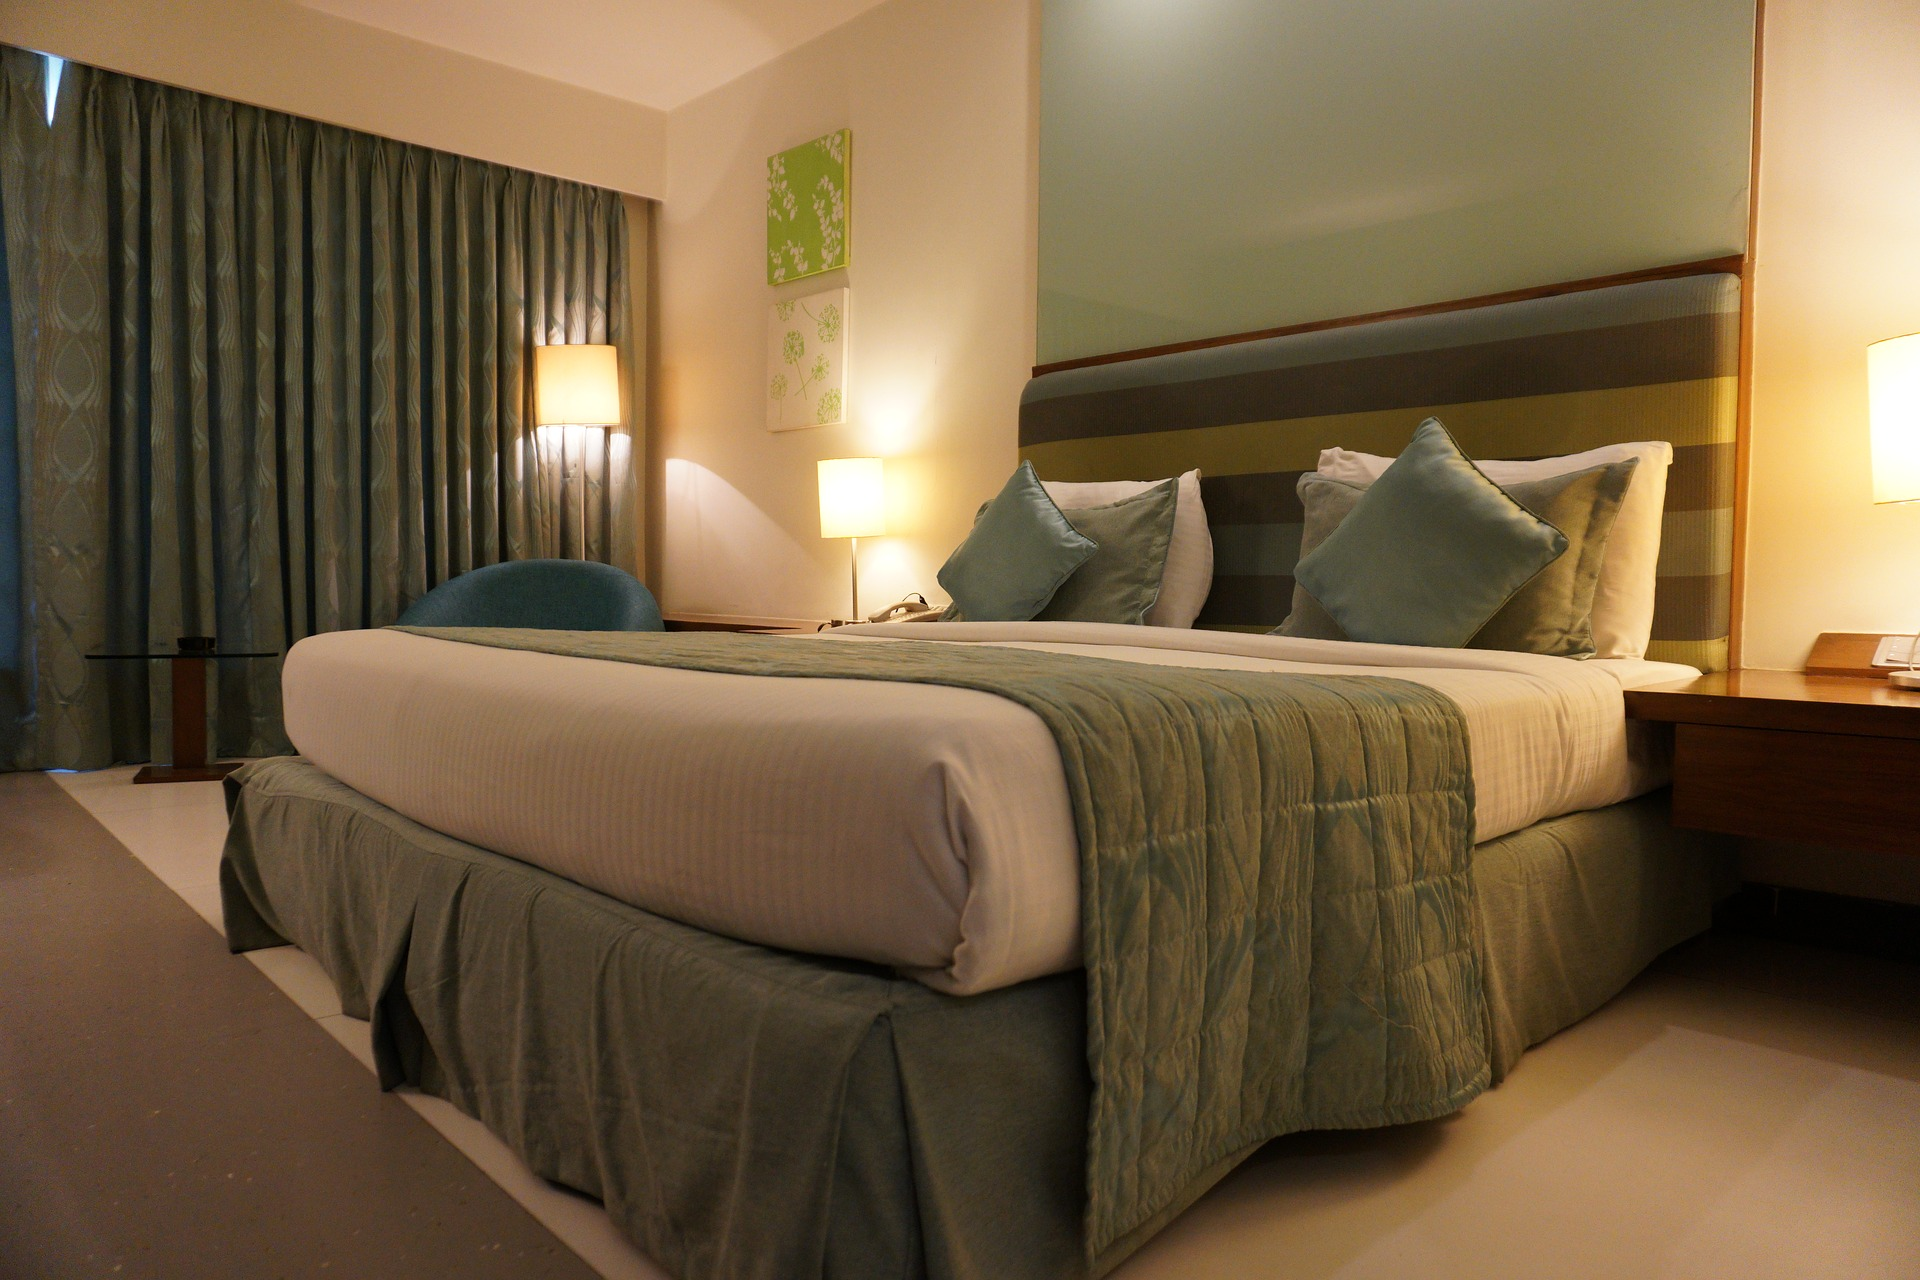 There Are Often Occasions Where You Need A Hotel Room For A Few Hours Or Perhaps Just During The Daytime And Not At Night This Is Often True If You Are On